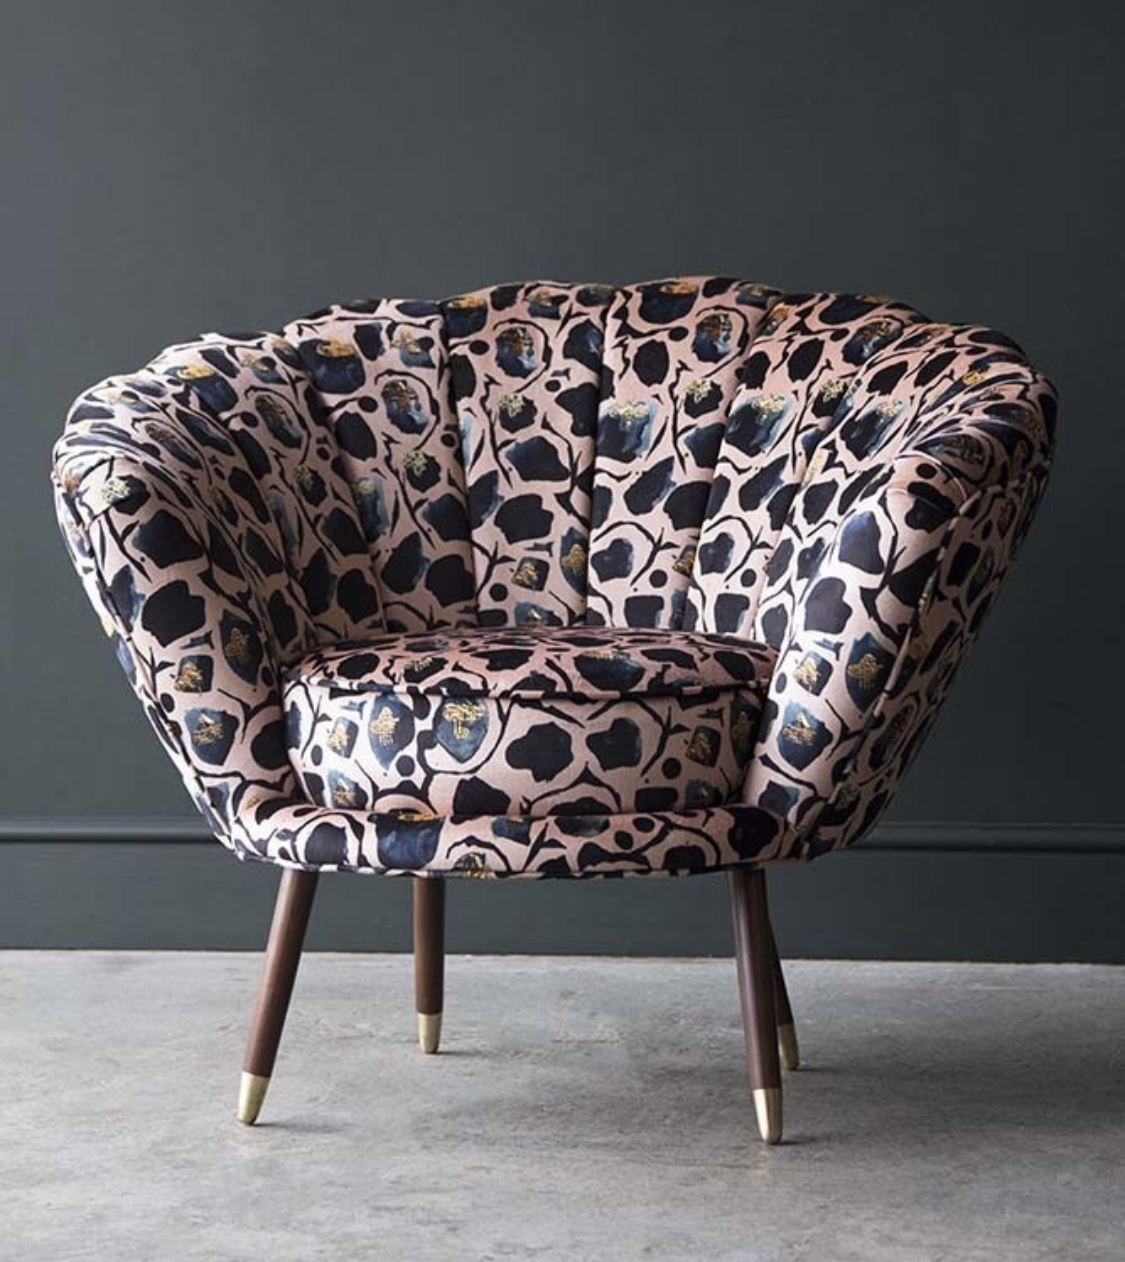 Incredible Oyster chair in @annahaymandesigns fabric in collaboration with @houseofsloane_uk (I would choose the tobacco colour way - the same as my lounge curtains)